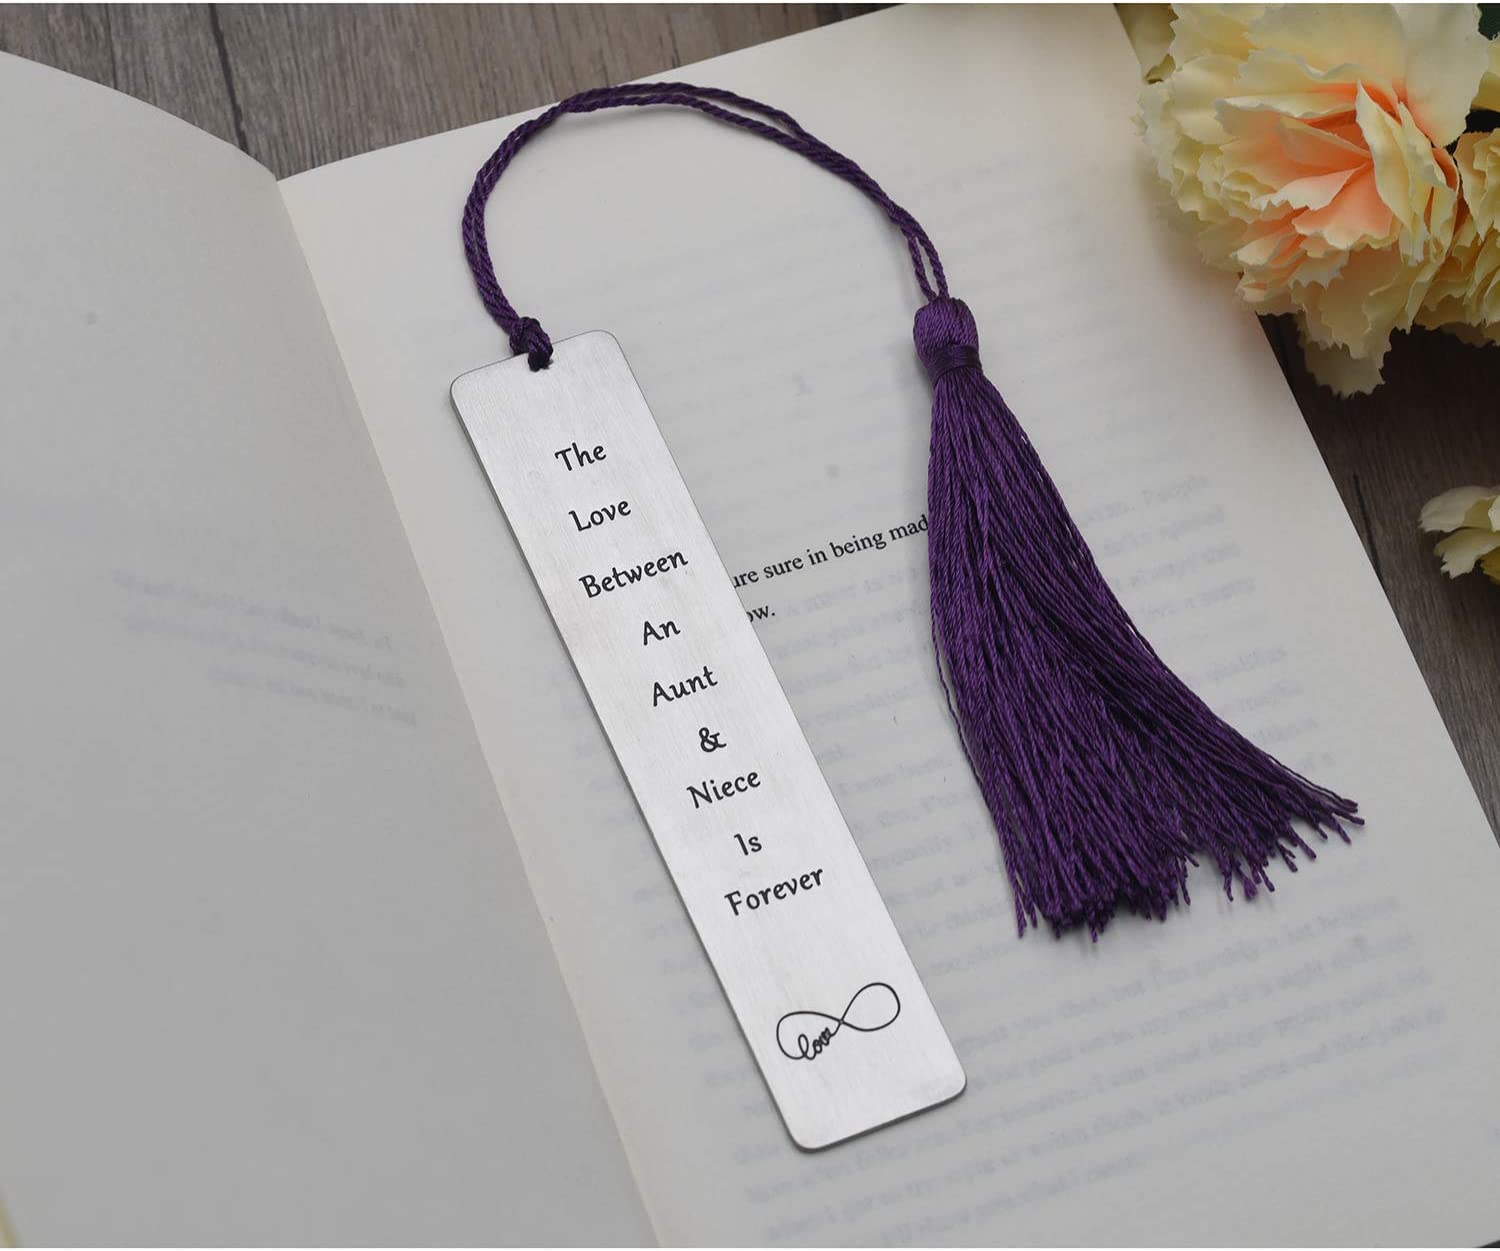 Aunt Gift from Niece The Love Between an Aunt and Niece is Forever Bookmark Gift for Aunts Aunties Birthday Gifts Sisters The Love Between an Aunt and Niece is Forever